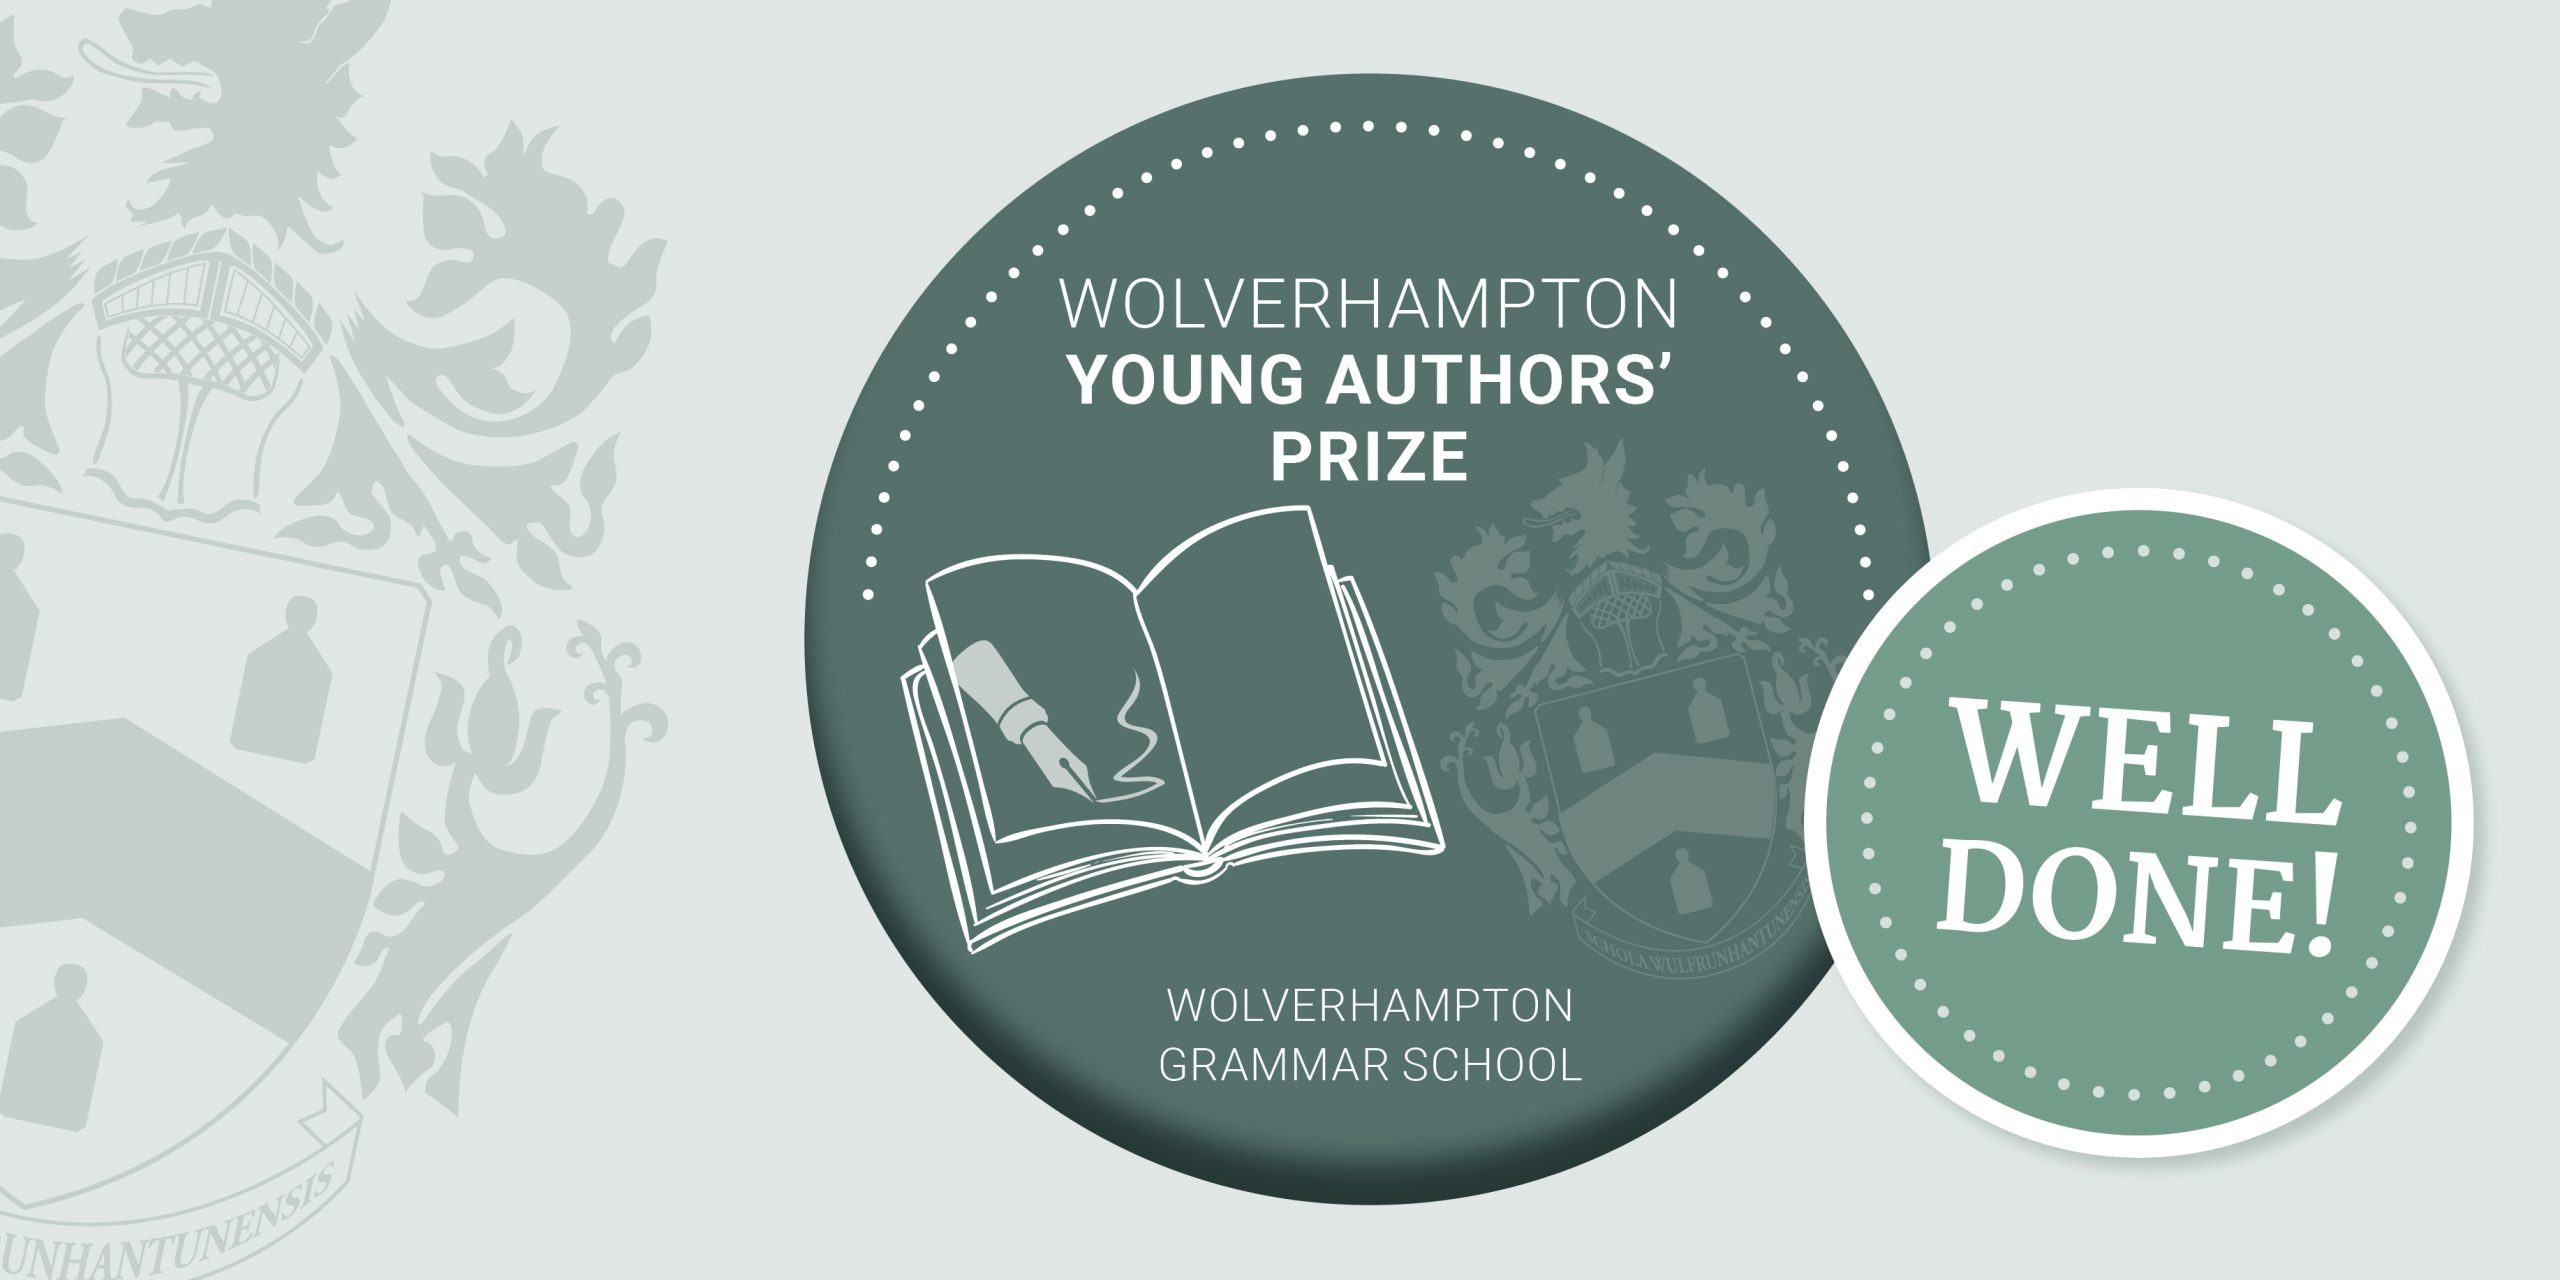 Wolverhampton Young Authors' Prize